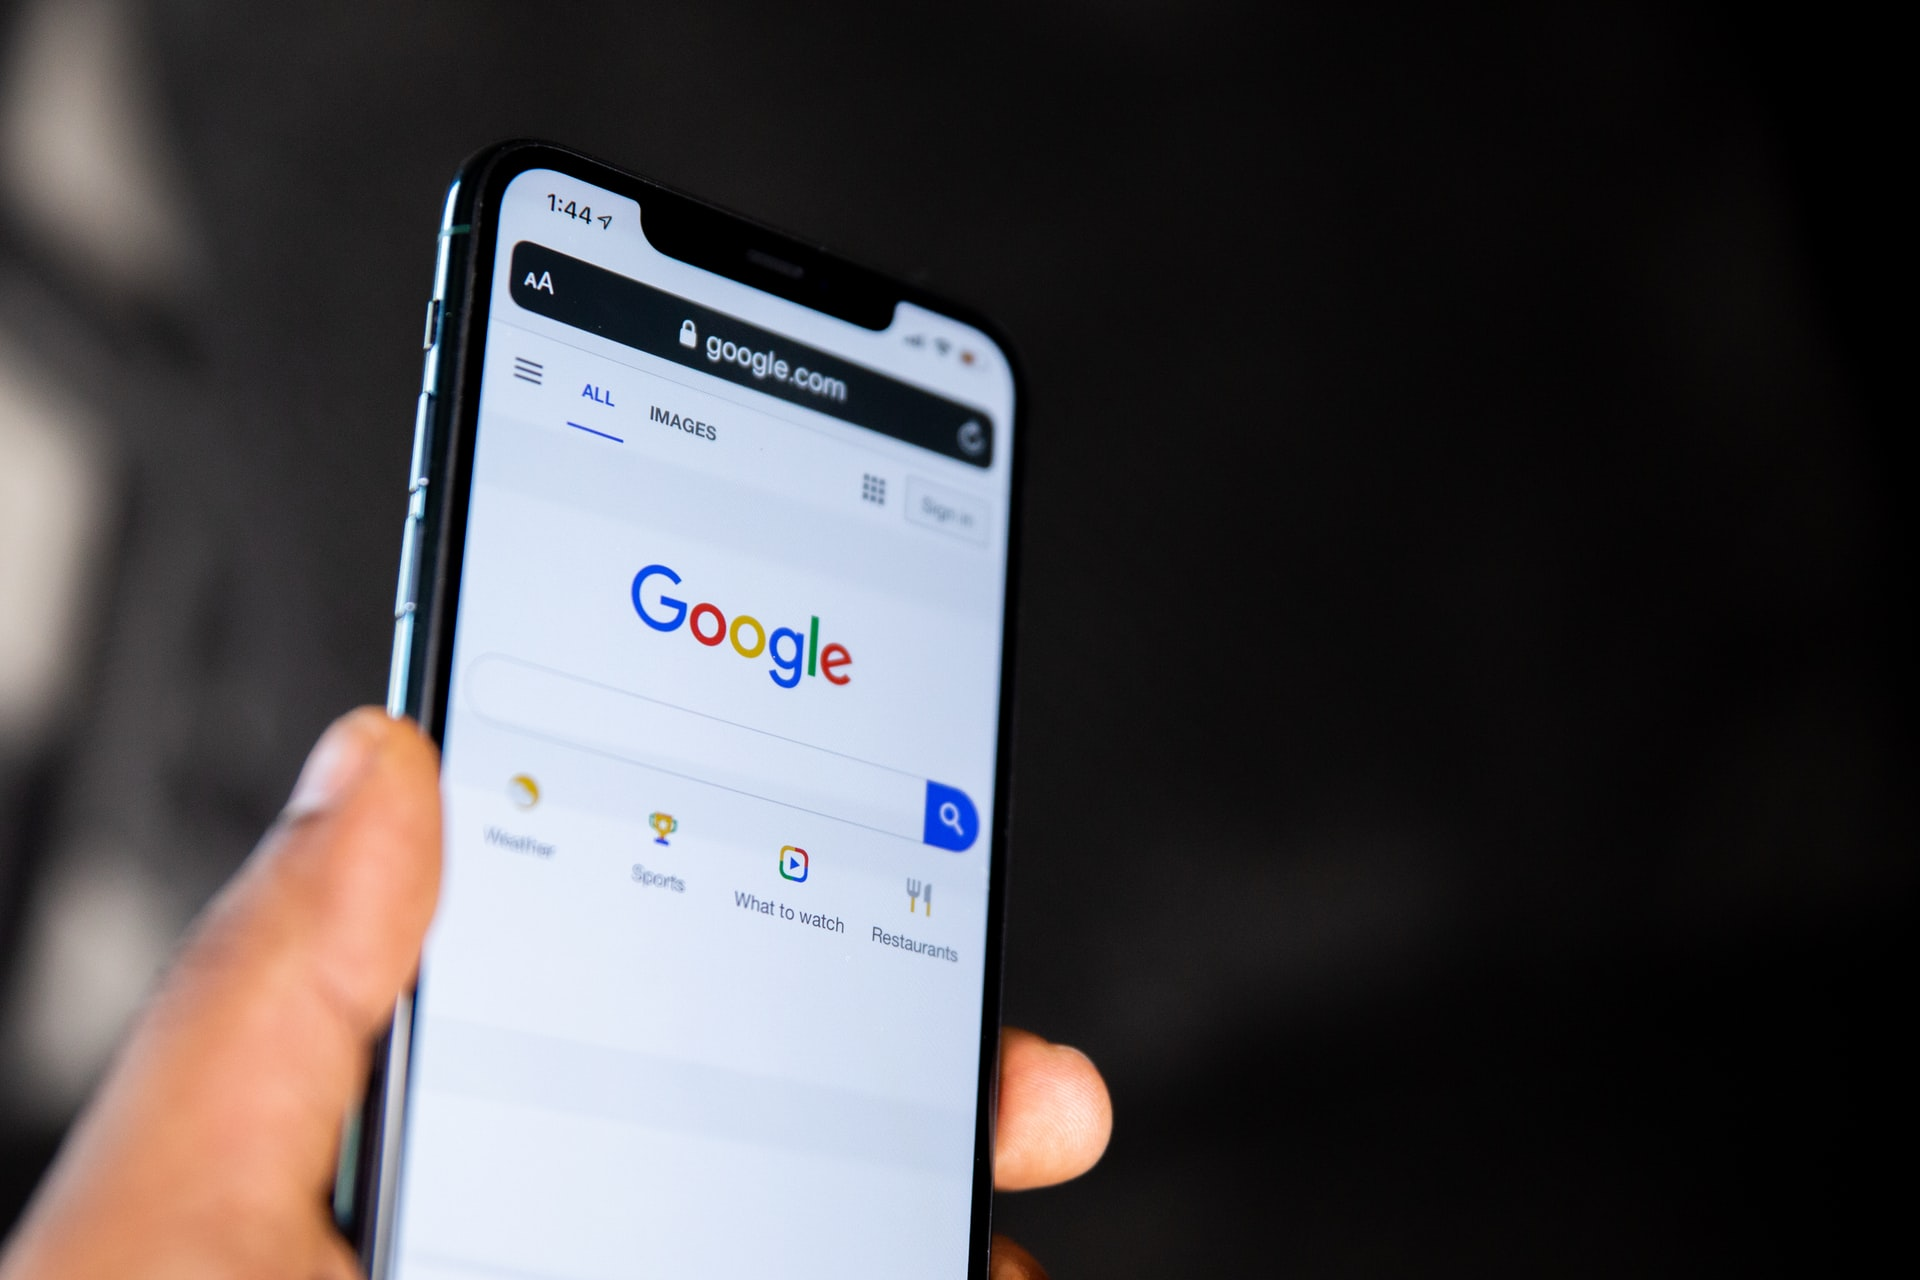 Google search bar on the screen of a smartphone